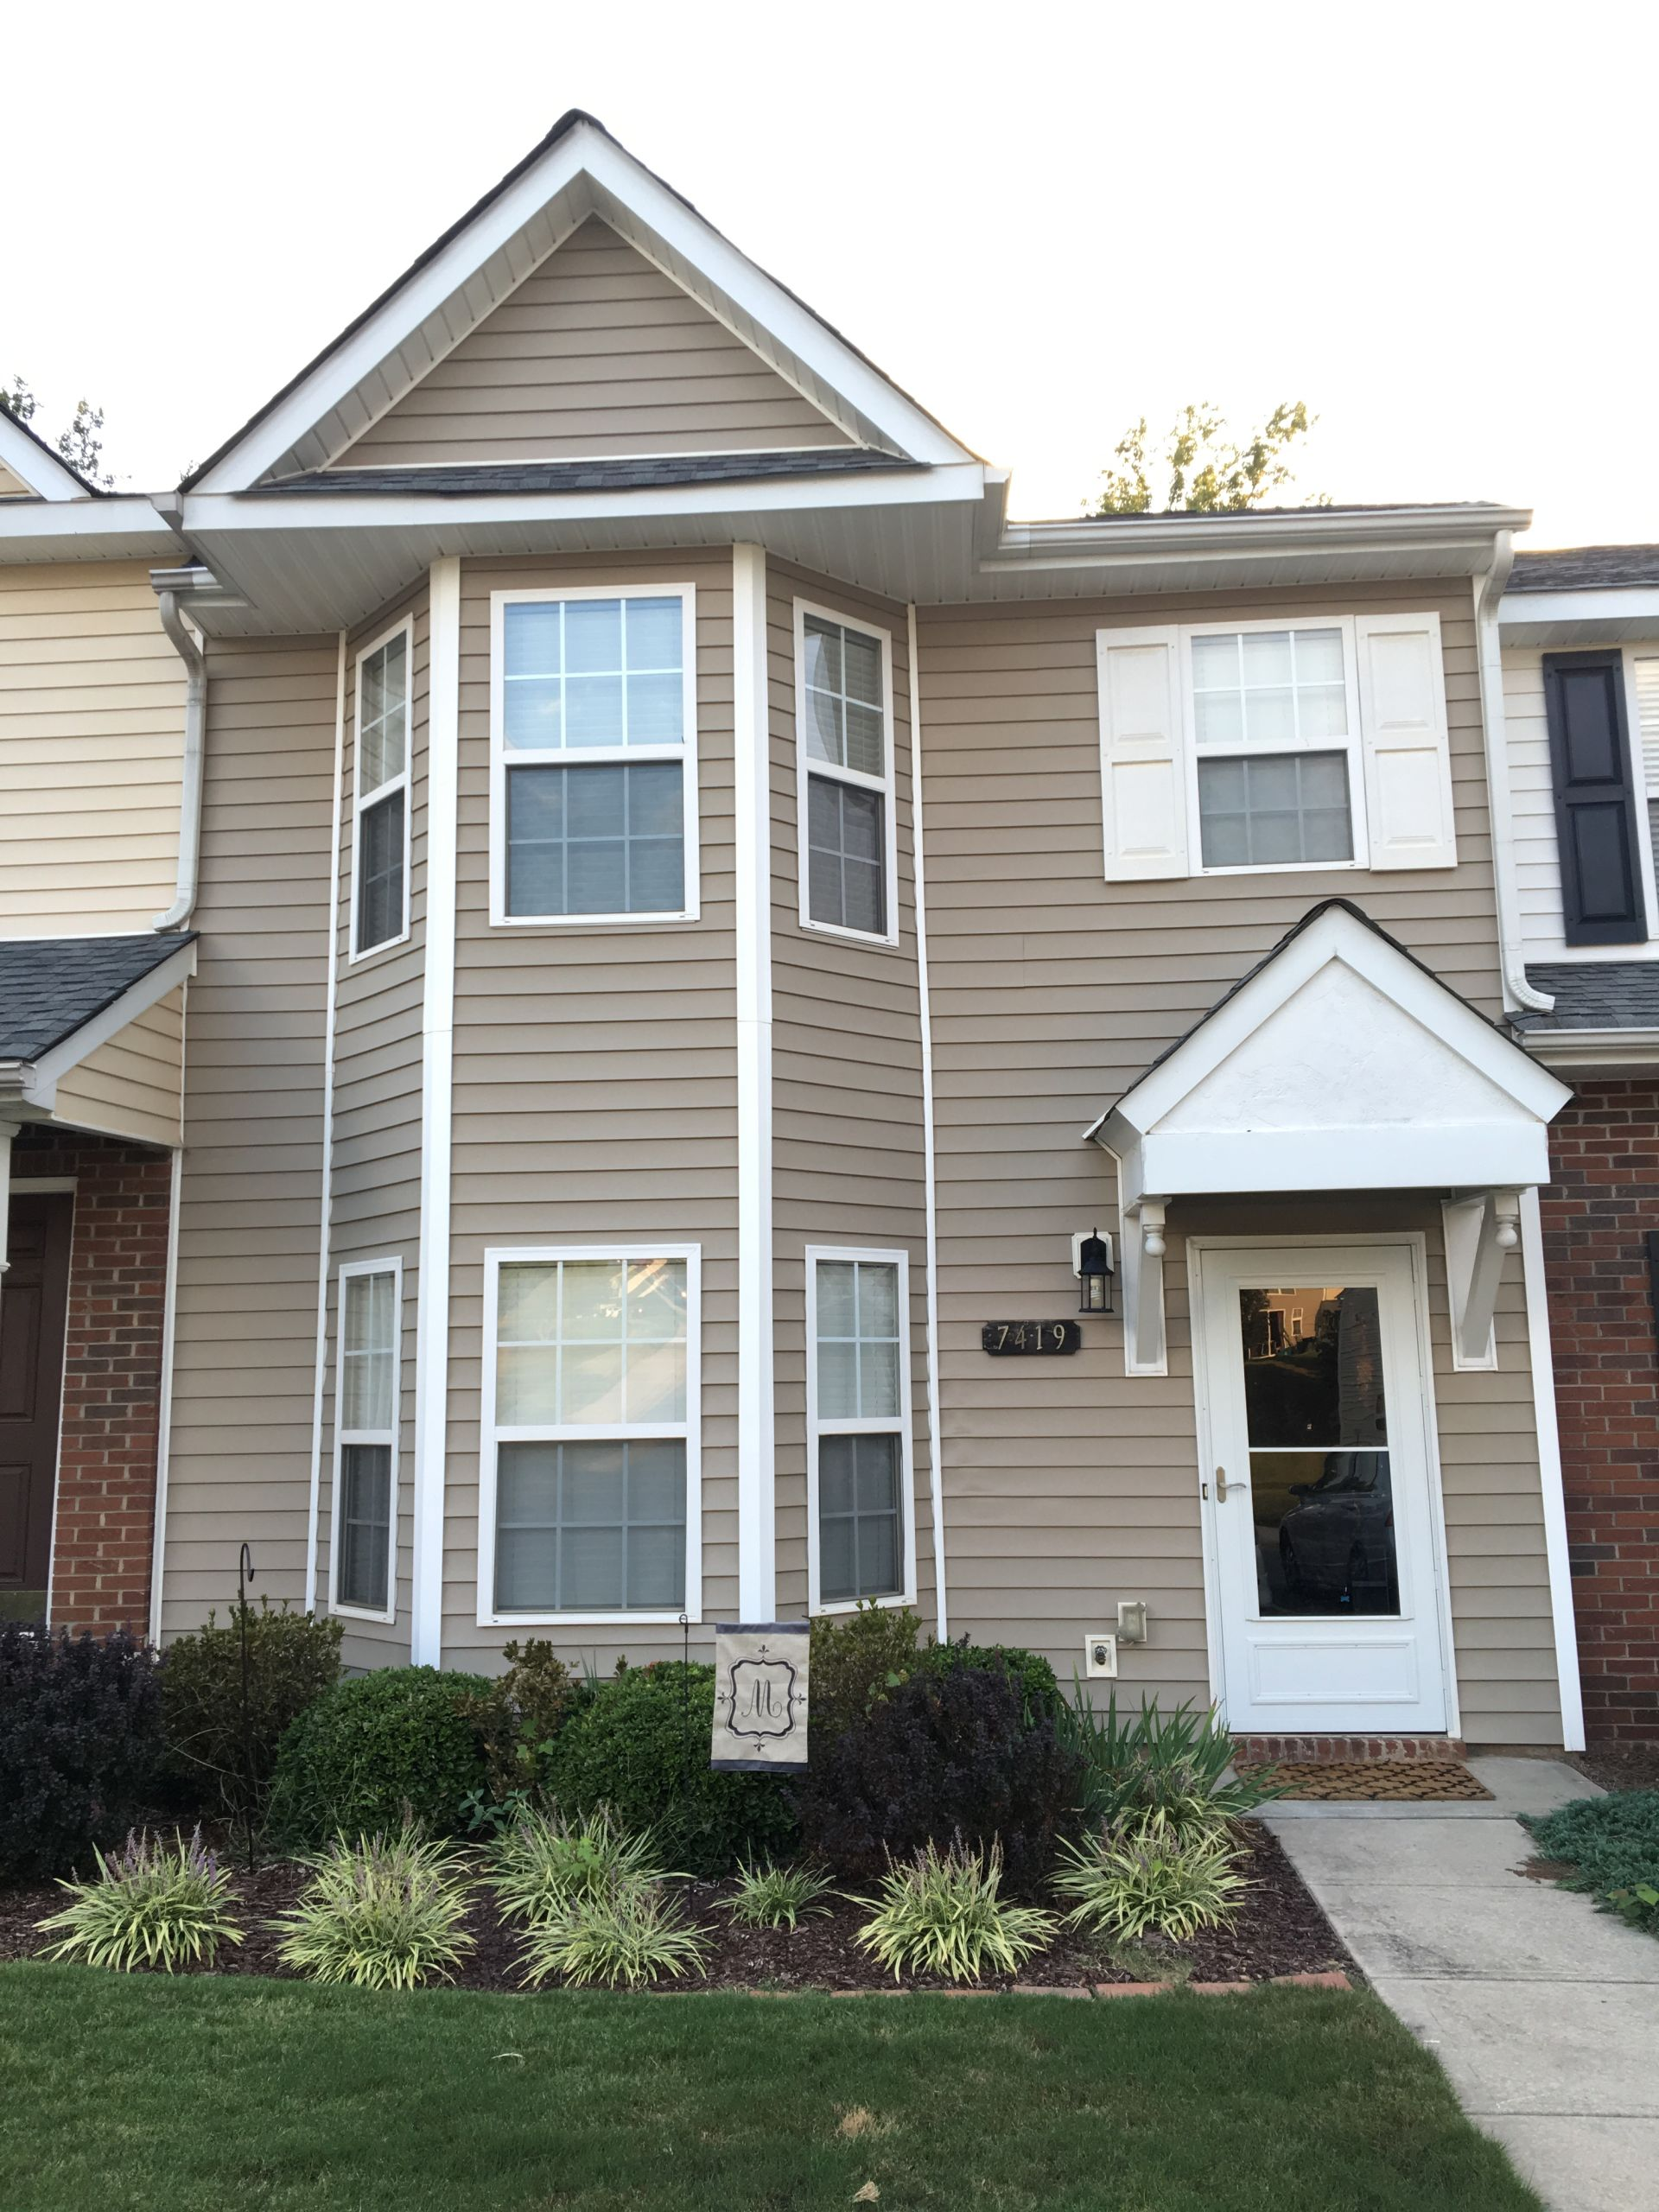 PRICE ADJUSTMENT ON THIS BEAUTIFUL HOME IN HANOVER